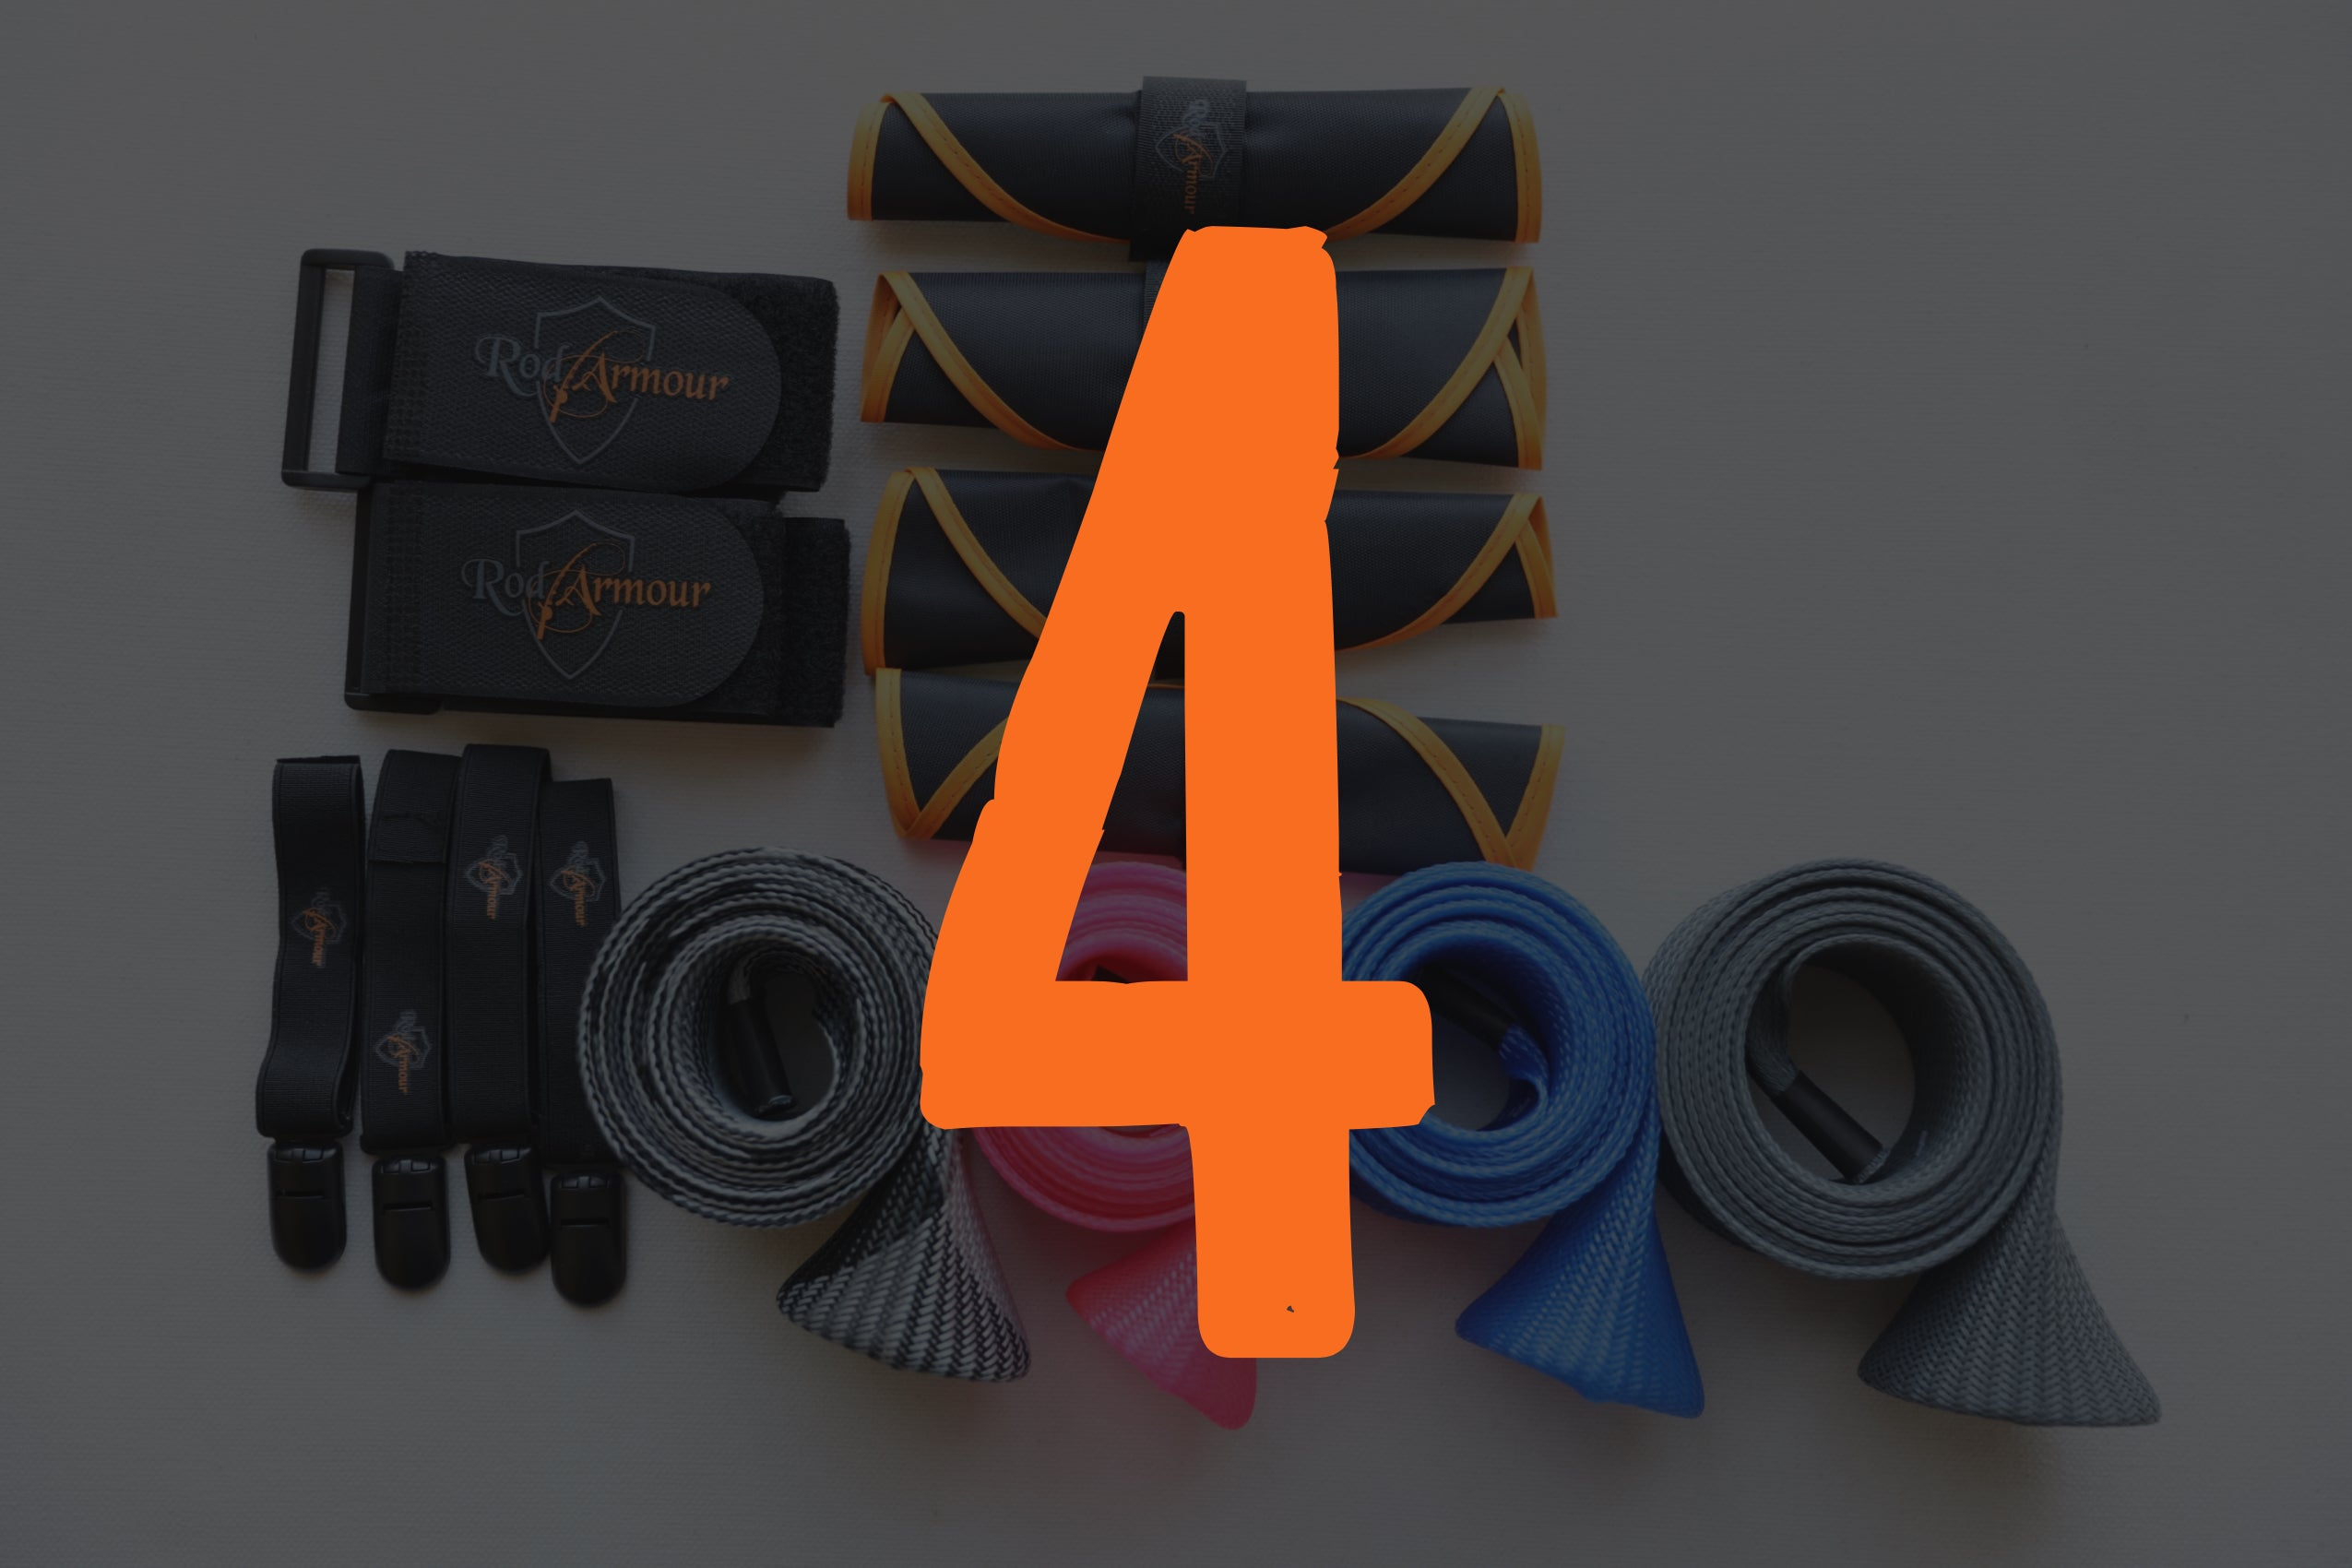 The Complete Solution 4 Pack – Rod Armour